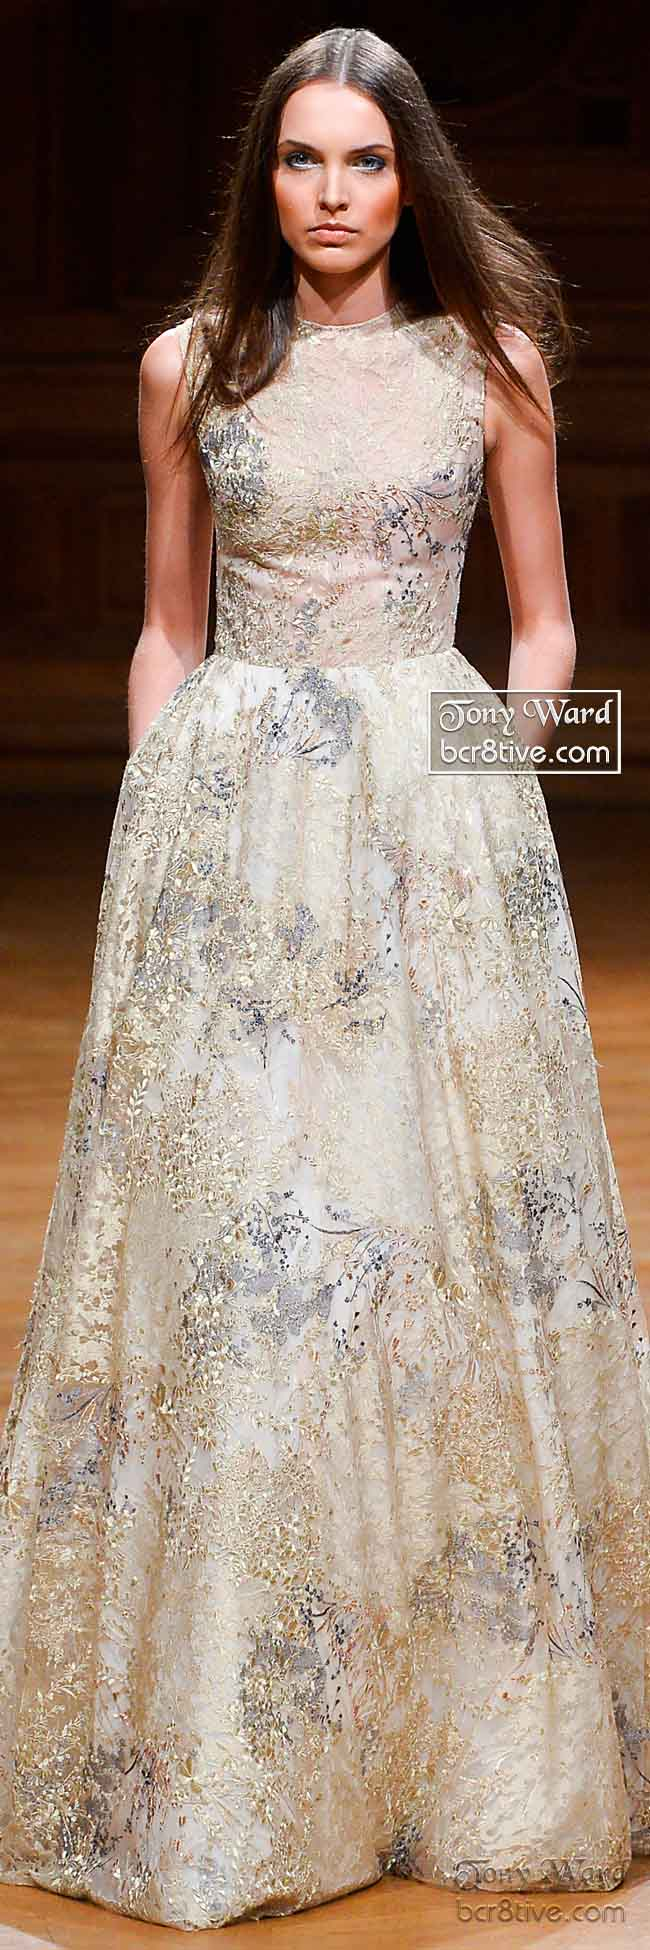 Soft Neutral Floral Sleeveless Gown